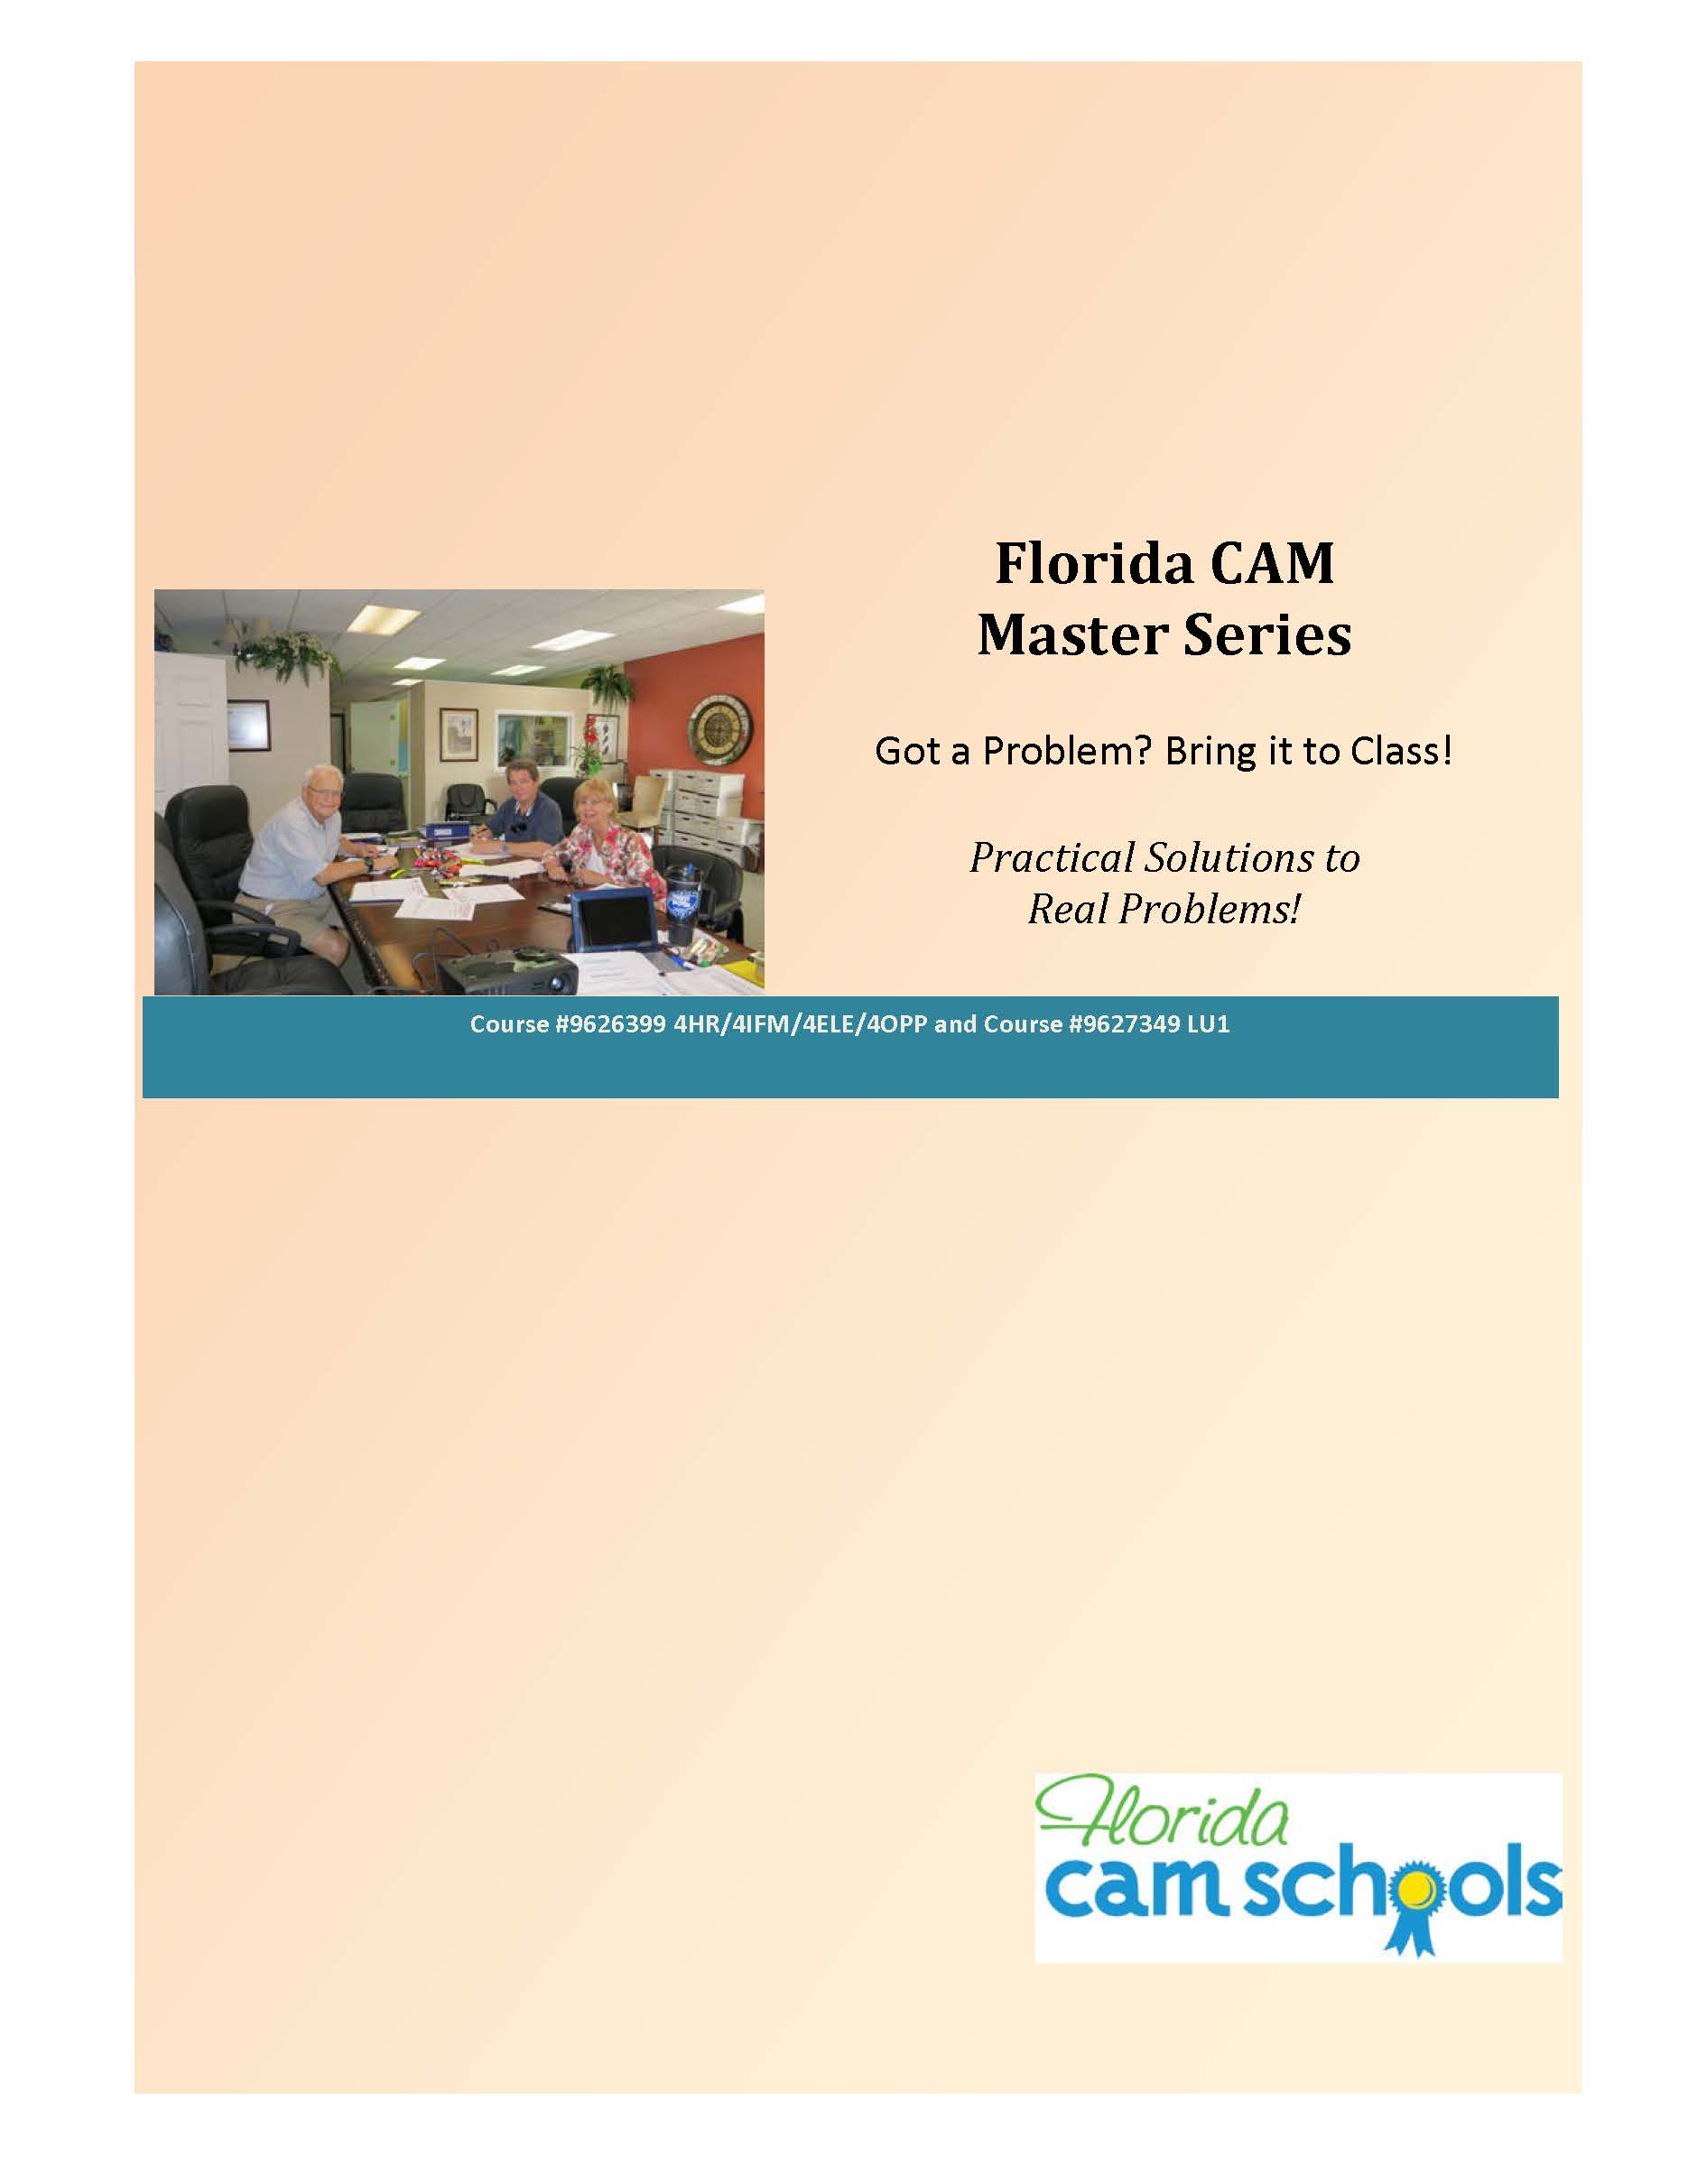 Florida CAM Master Series (manual)